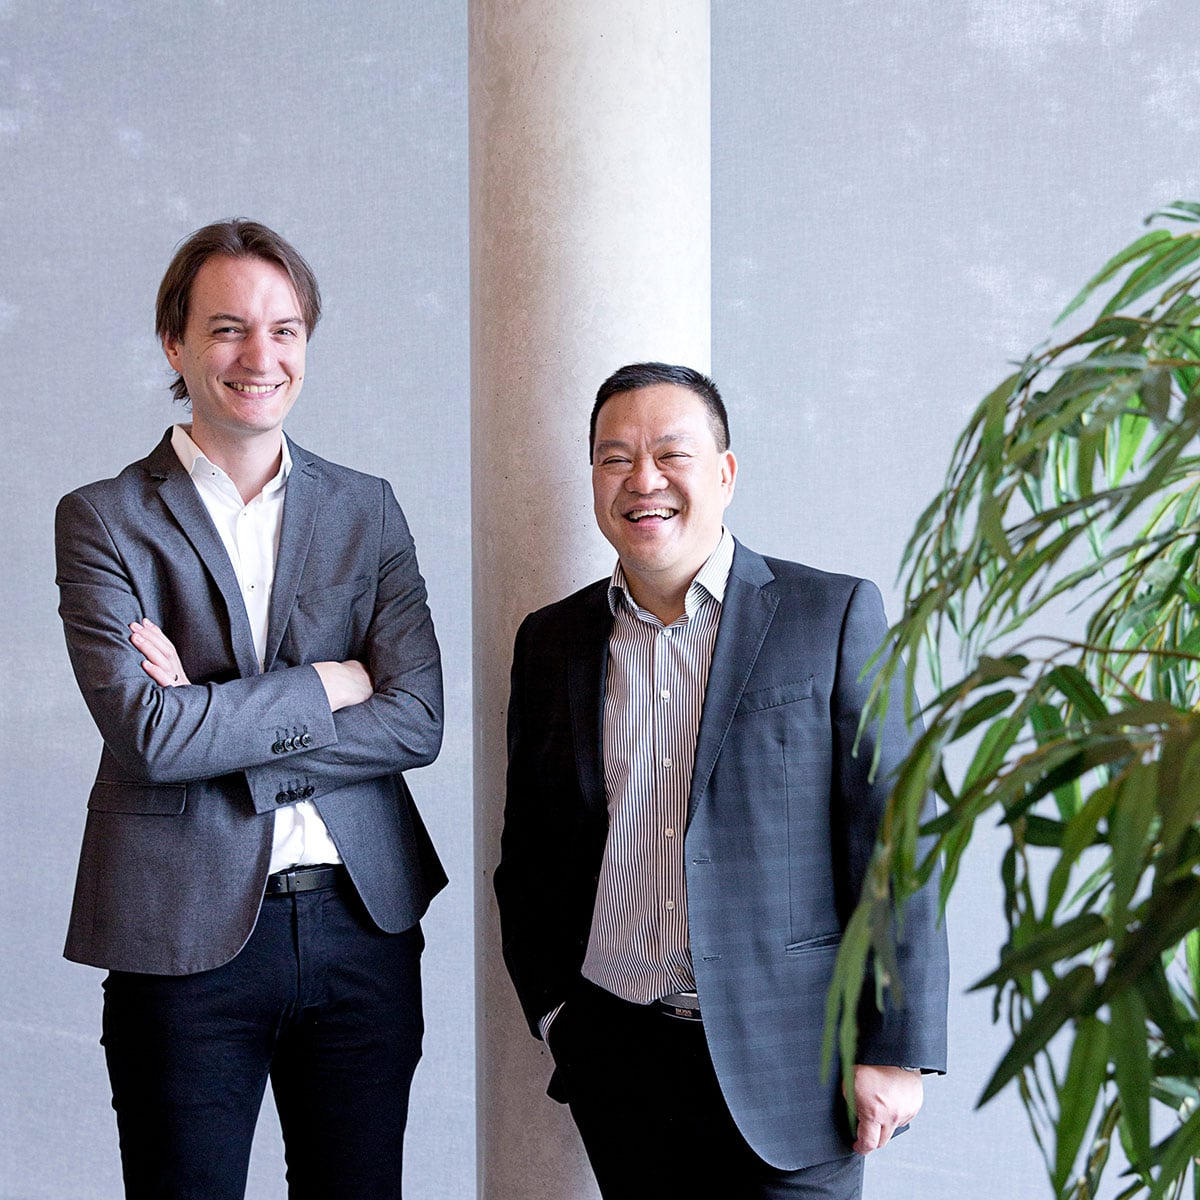 Thur Begheyn en Kit Tang - BenT Accountants en Belastingadviseurs